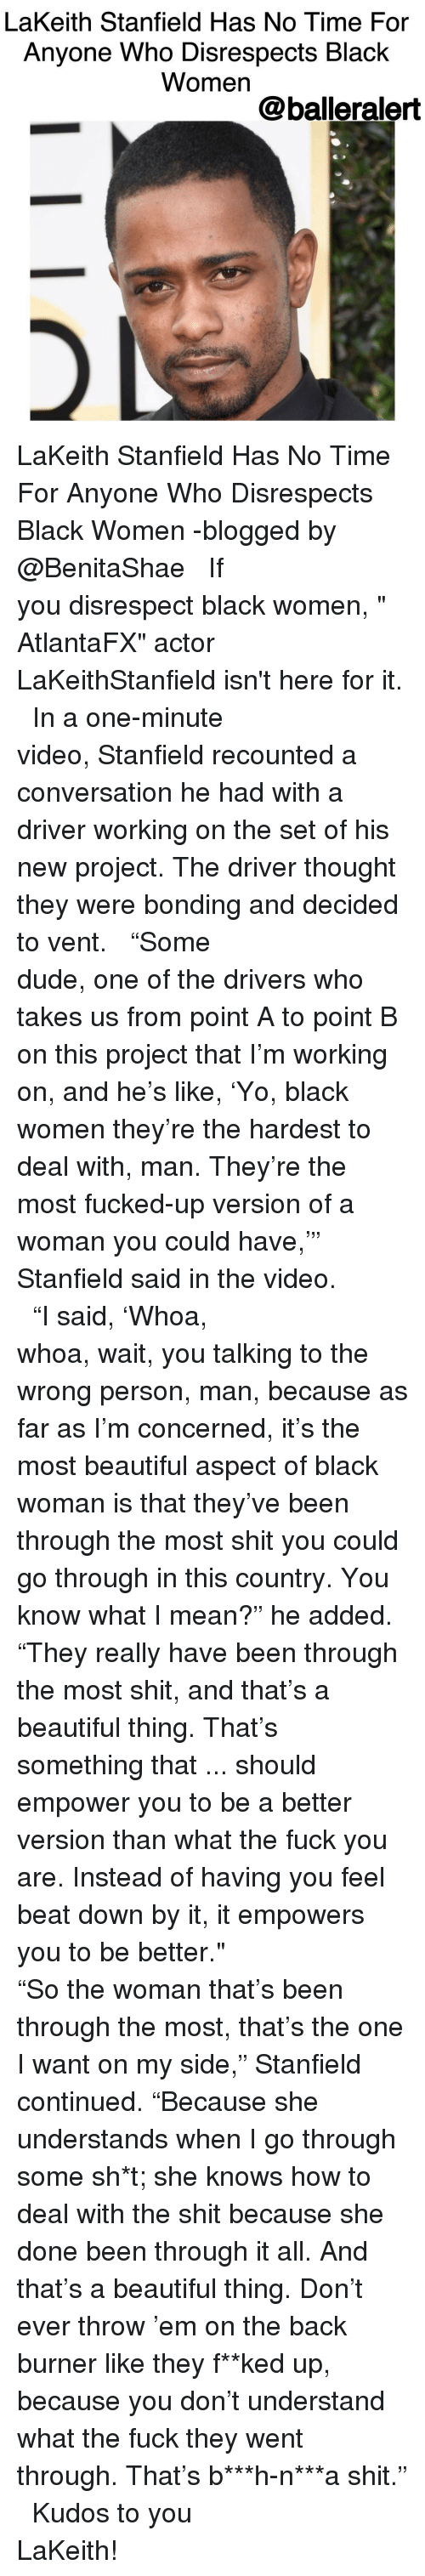 "Burners: LaKeith Stanfield Has No Time For  Anyone Who Disrespects Black  Women  balleralert LaKeith Stanfield Has No Time For Anyone Who Disrespects Black Women -blogged by @BenitaShae ⠀⠀⠀⠀⠀⠀⠀⠀⠀ ⠀⠀⠀⠀⠀⠀⠀⠀⠀ If you disrespect black women, "" AtlantaFX"" actor LaKeithStanfield isn't here for it. ⠀⠀⠀⠀⠀⠀⠀⠀⠀ ⠀⠀⠀⠀⠀⠀⠀⠀⠀ In a one-minute video, Stanfield recounted a conversation he had with a driver working on the set of his new project. The driver thought they were bonding and decided to vent. ⠀⠀⠀⠀⠀⠀⠀⠀⠀ ⠀⠀⠀⠀⠀⠀⠀⠀⠀ ""Some dude, one of the drivers who takes us from point A to point B on this project that I'm working on, and he's like, 'Yo, black women they're the hardest to deal with, man. They're the most fucked-up version of a woman you could have,'"" Stanfield said in the video. ⠀⠀⠀⠀⠀⠀⠀⠀⠀ ⠀⠀⠀⠀⠀⠀⠀⠀⠀ ""I said, 'Whoa, whoa, wait, you talking to the wrong person, man, because as far as I'm concerned, it's the most beautiful aspect of black woman is that they've been through the most shit you could go through in this country. You know what I mean?"" he added. ""They really have been through the most shit, and that's a beautiful thing. That's something that ... should empower you to be a better version than what the fuck you are. Instead of having you feel beat down by it, it empowers you to be better."" ⠀⠀⠀⠀⠀⠀⠀⠀⠀ ⠀⠀⠀⠀⠀⠀⠀⠀⠀ ""So the woman that's been through the most, that's the one I want on my side,"" Stanfield continued. ""Because she understands when I go through some sh*t; she knows how to deal with the shit because she done been through it all. And that's a beautiful thing. Don't ever throw 'em on the back burner like they f**ked up, because you don't understand what the fuck they went through. That's b***h-n***a shit."" ⠀⠀⠀⠀⠀⠀⠀⠀⠀ ⠀⠀⠀⠀⠀⠀⠀⠀⠀ Kudos to you LaKeith!"